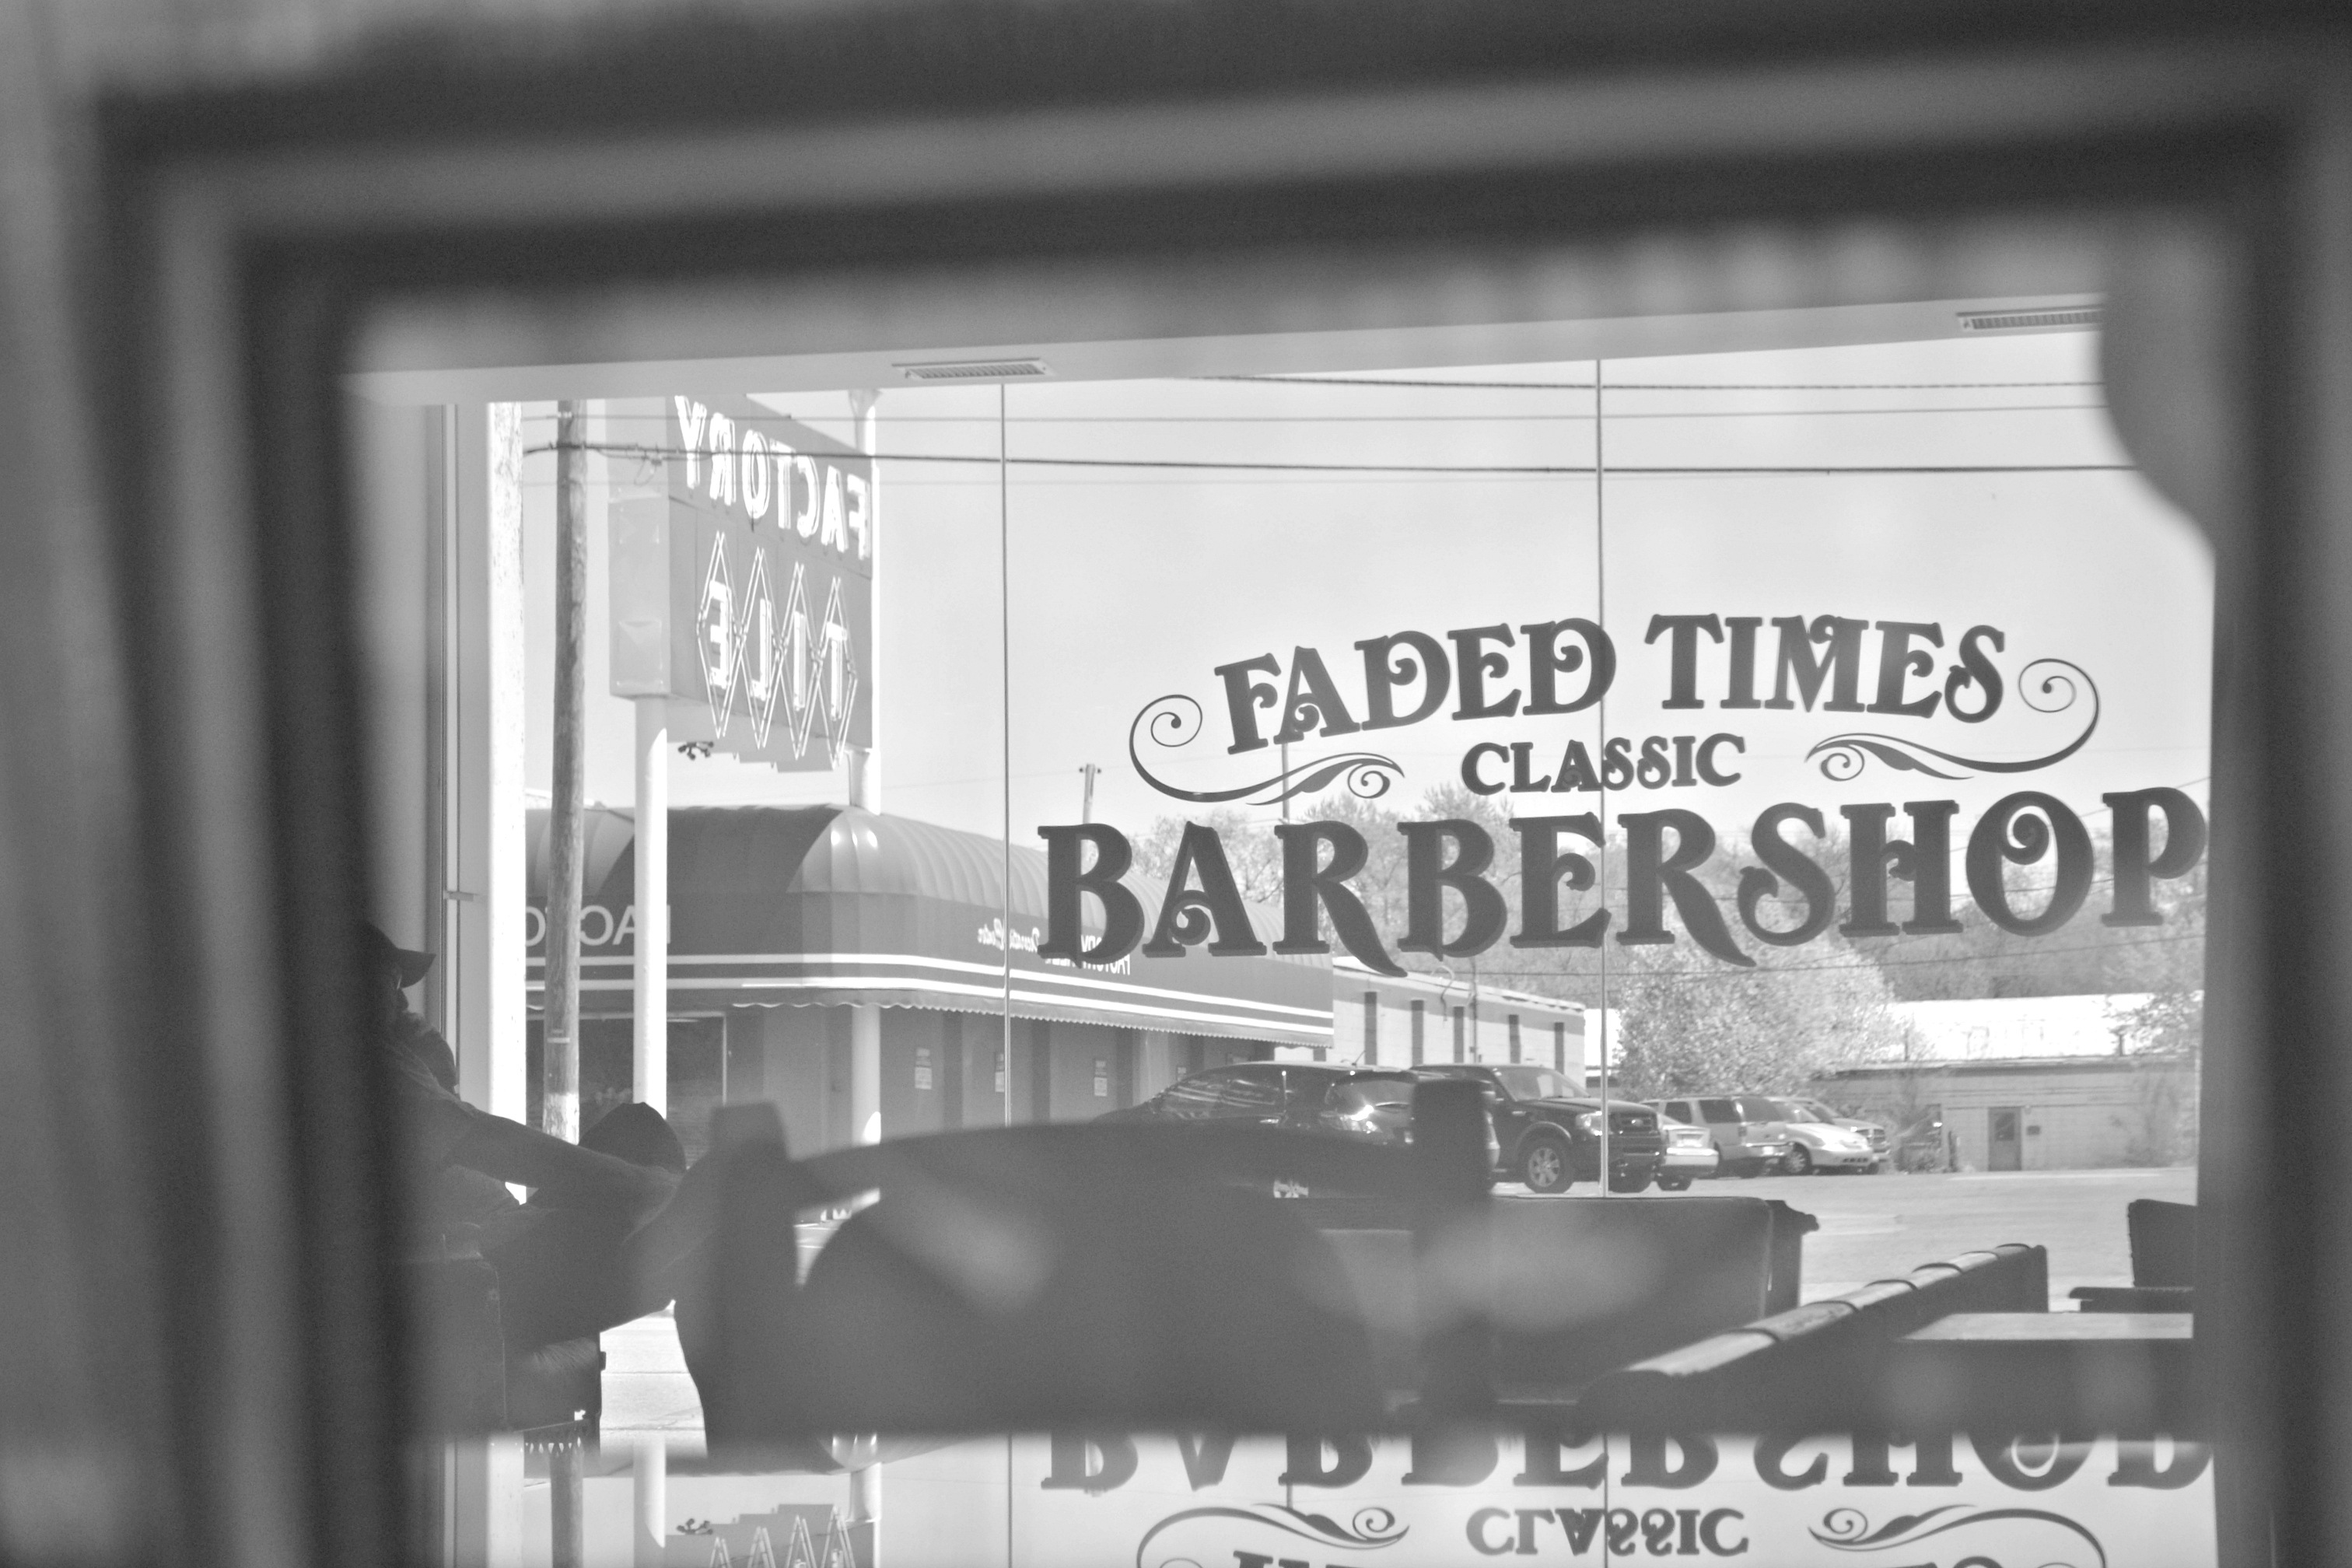 Faded Times Classic Barbershop